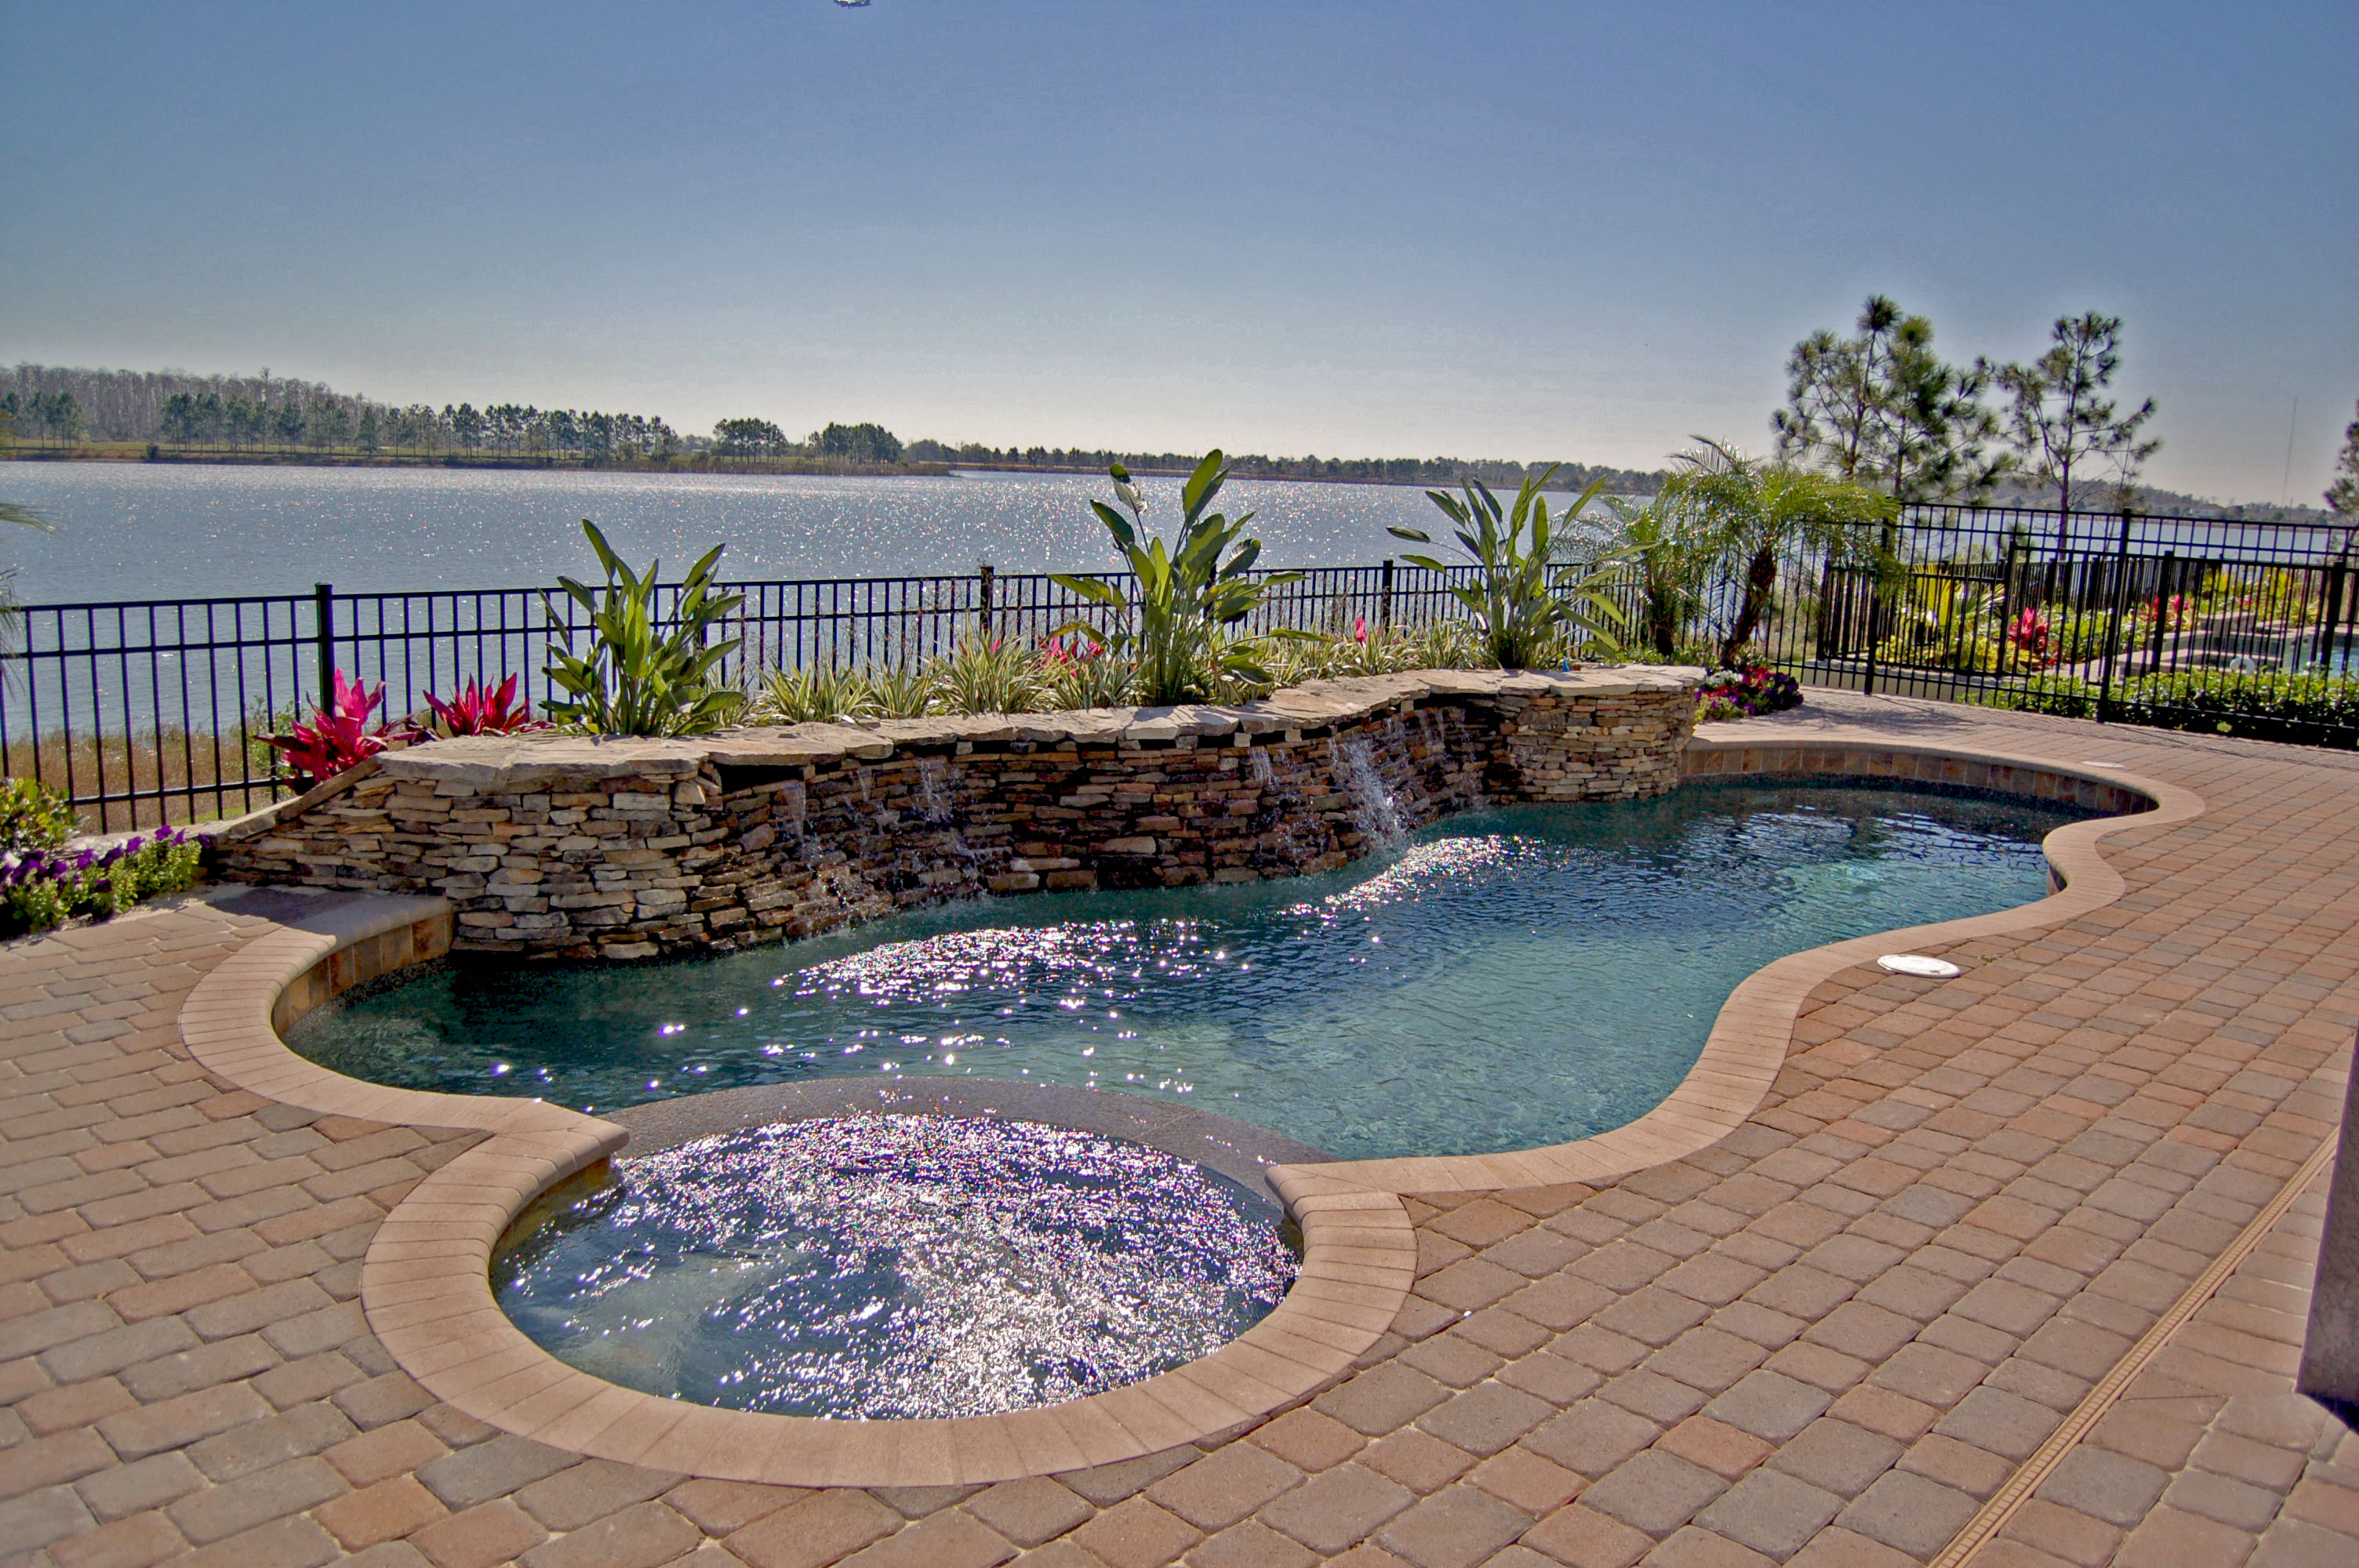 Jacuzzi Pool Installation See How Easily You Can Add A Spa To Your Existing Pool